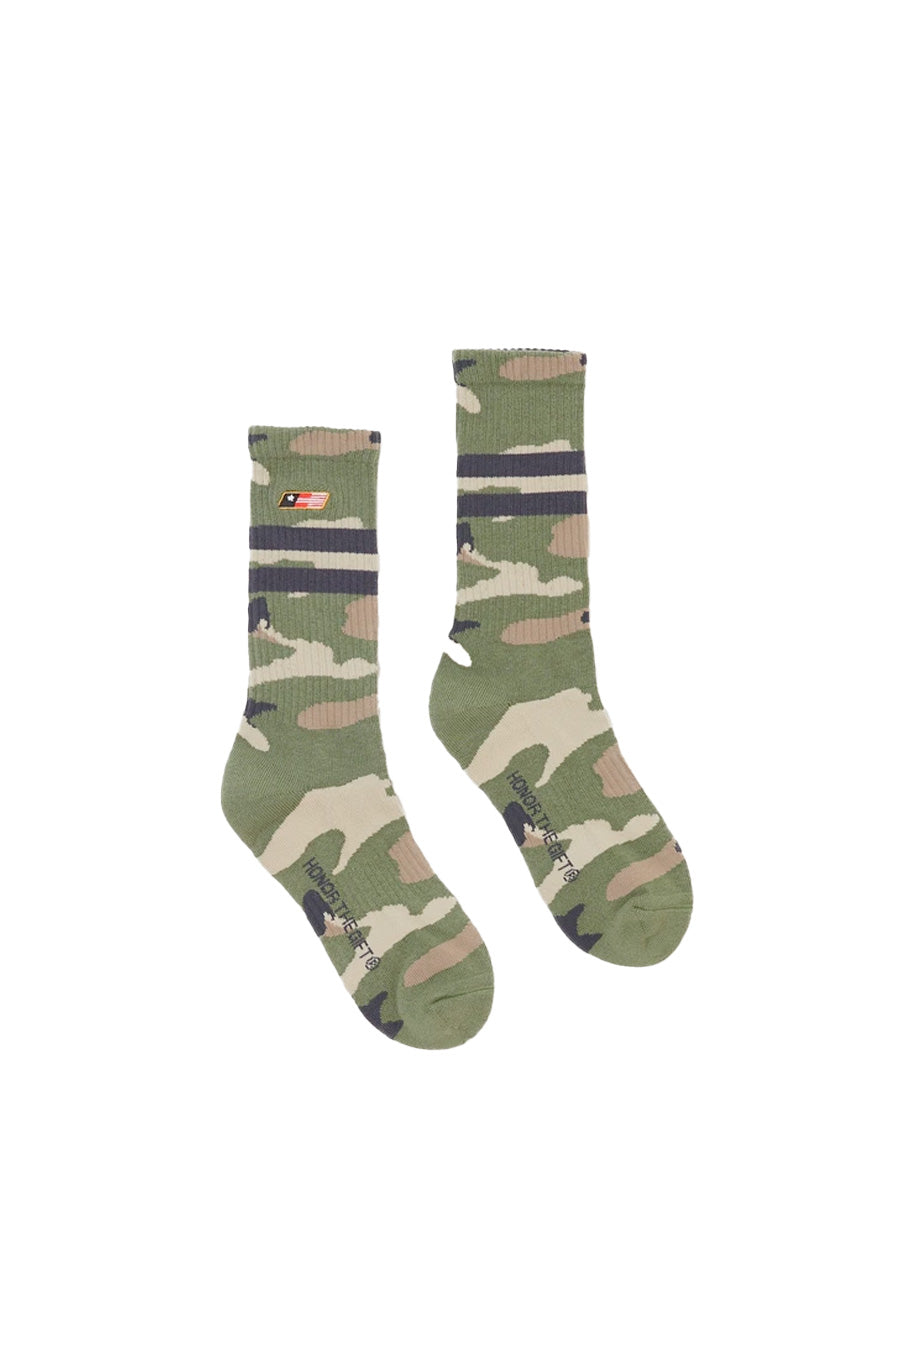 Honor the Gift - Camo Uniform Socks | 1032 SPACE